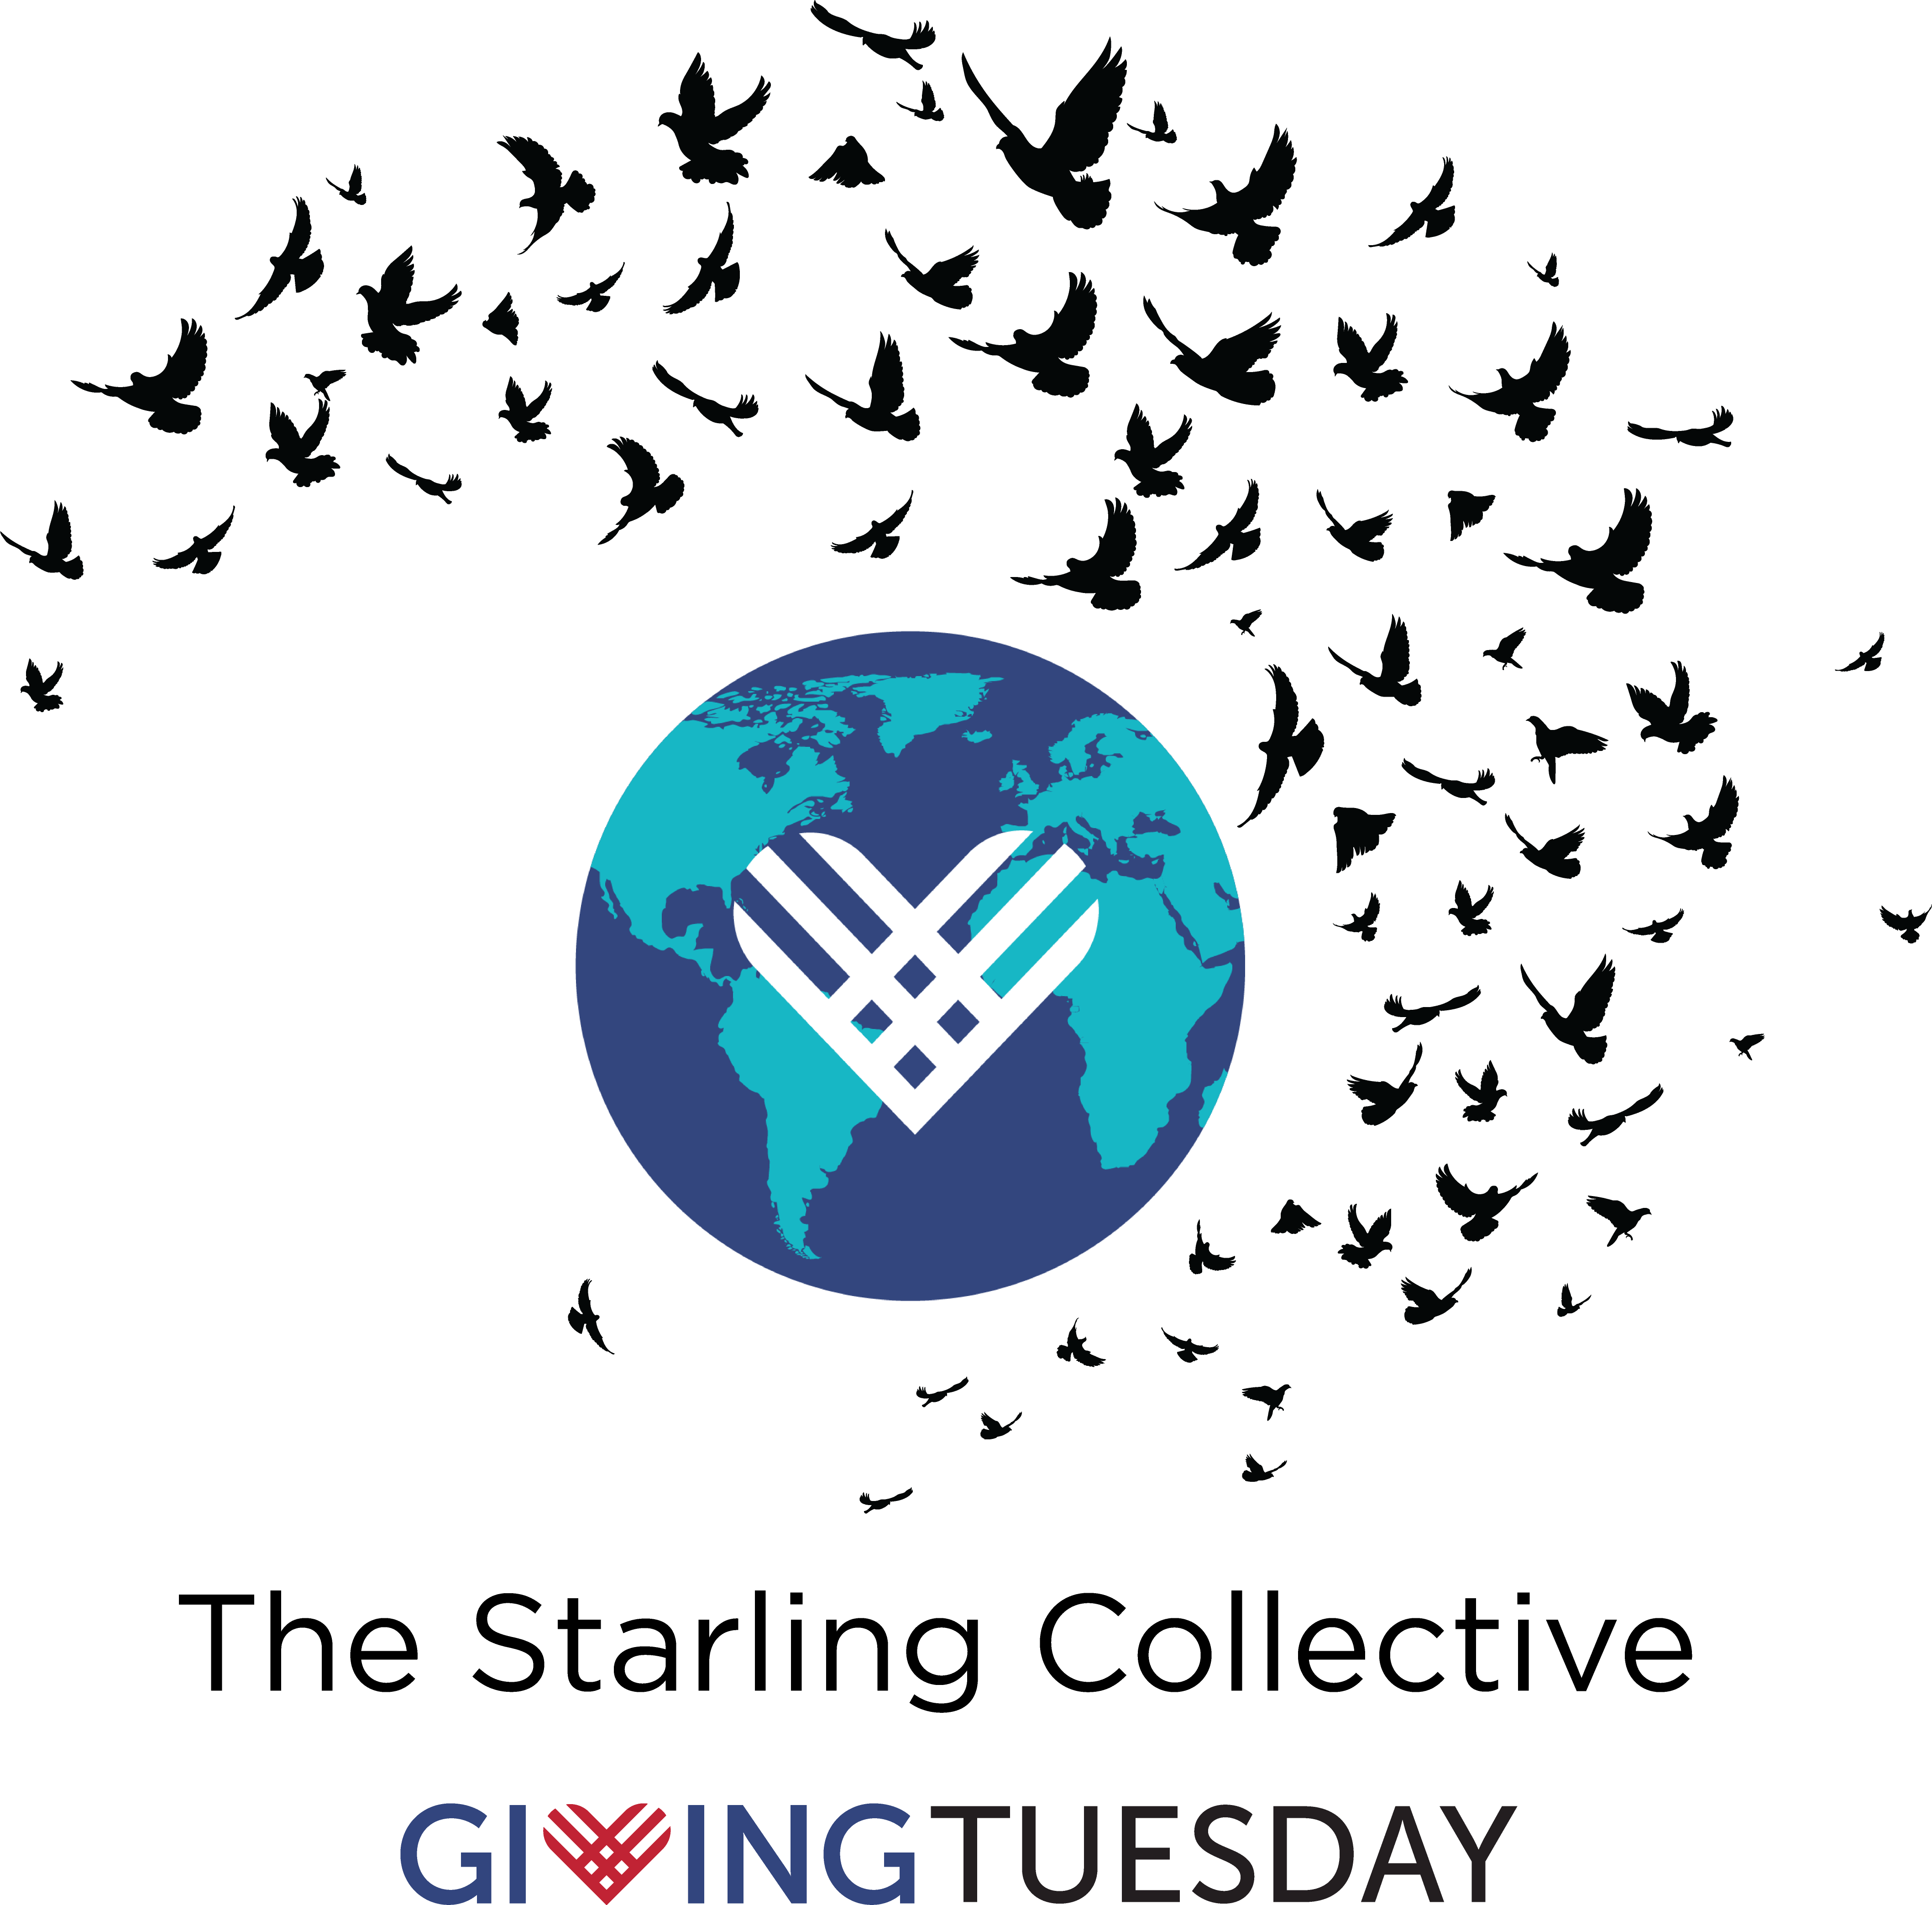 GivingTuesday Launches Global Learning Initiative and Microgranting for Grassroots Leaders